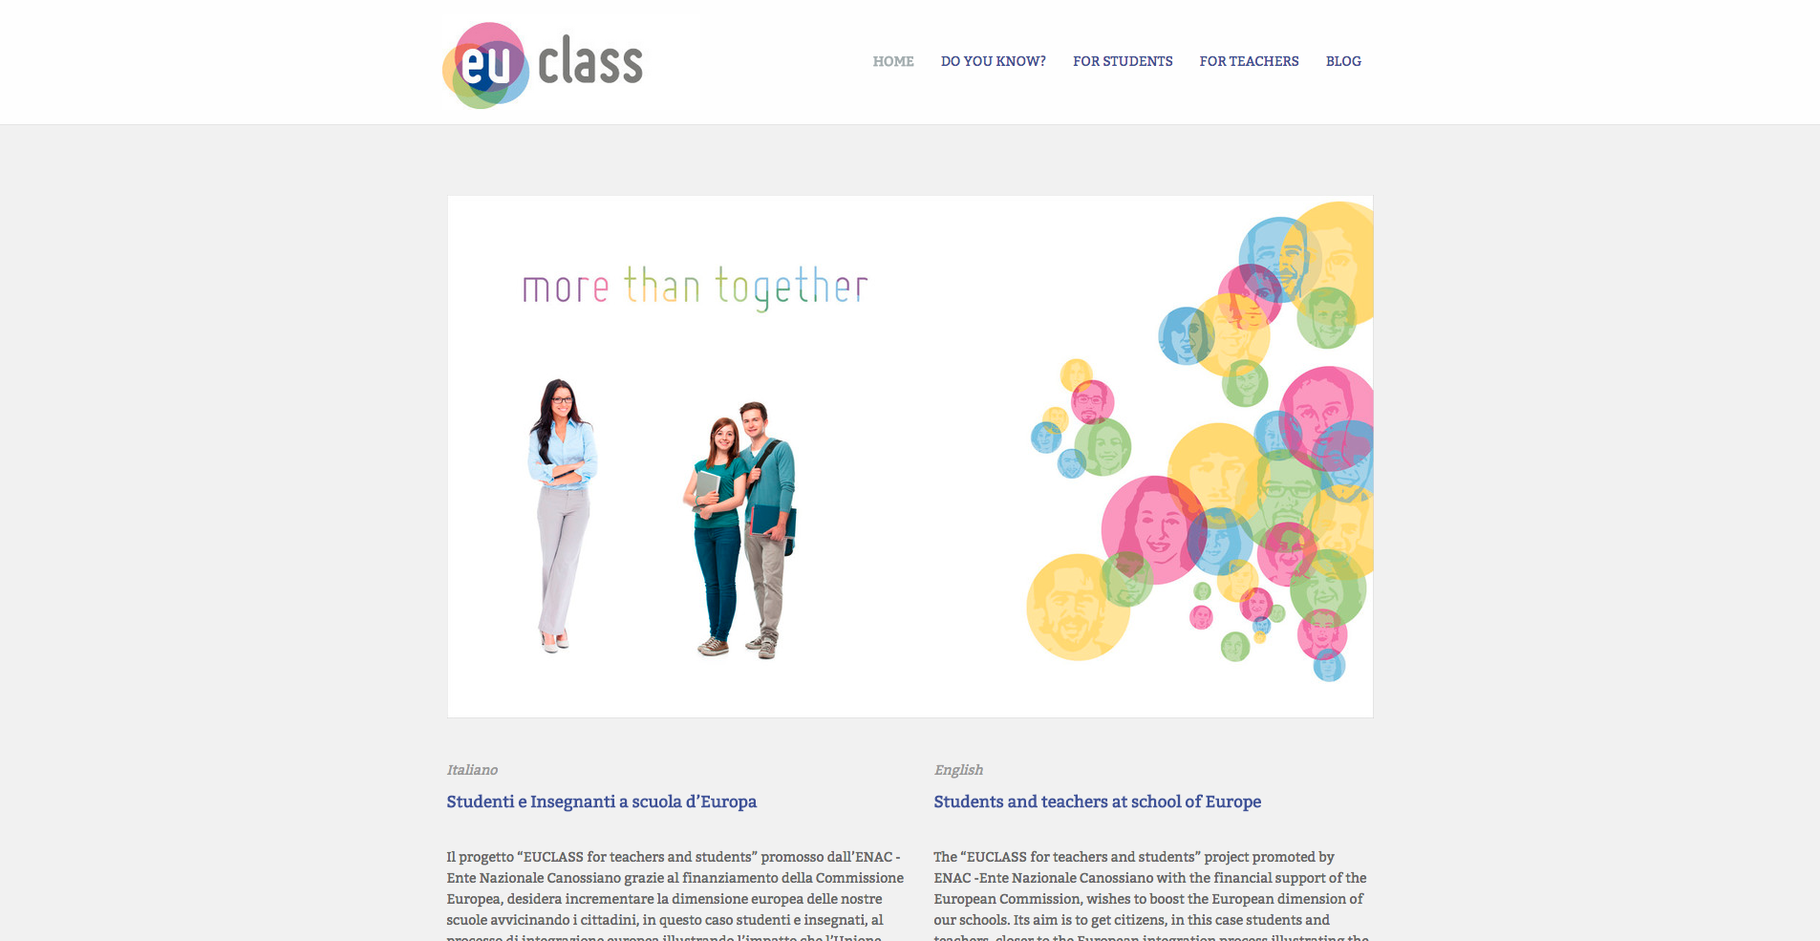 http://www.euclass.it/